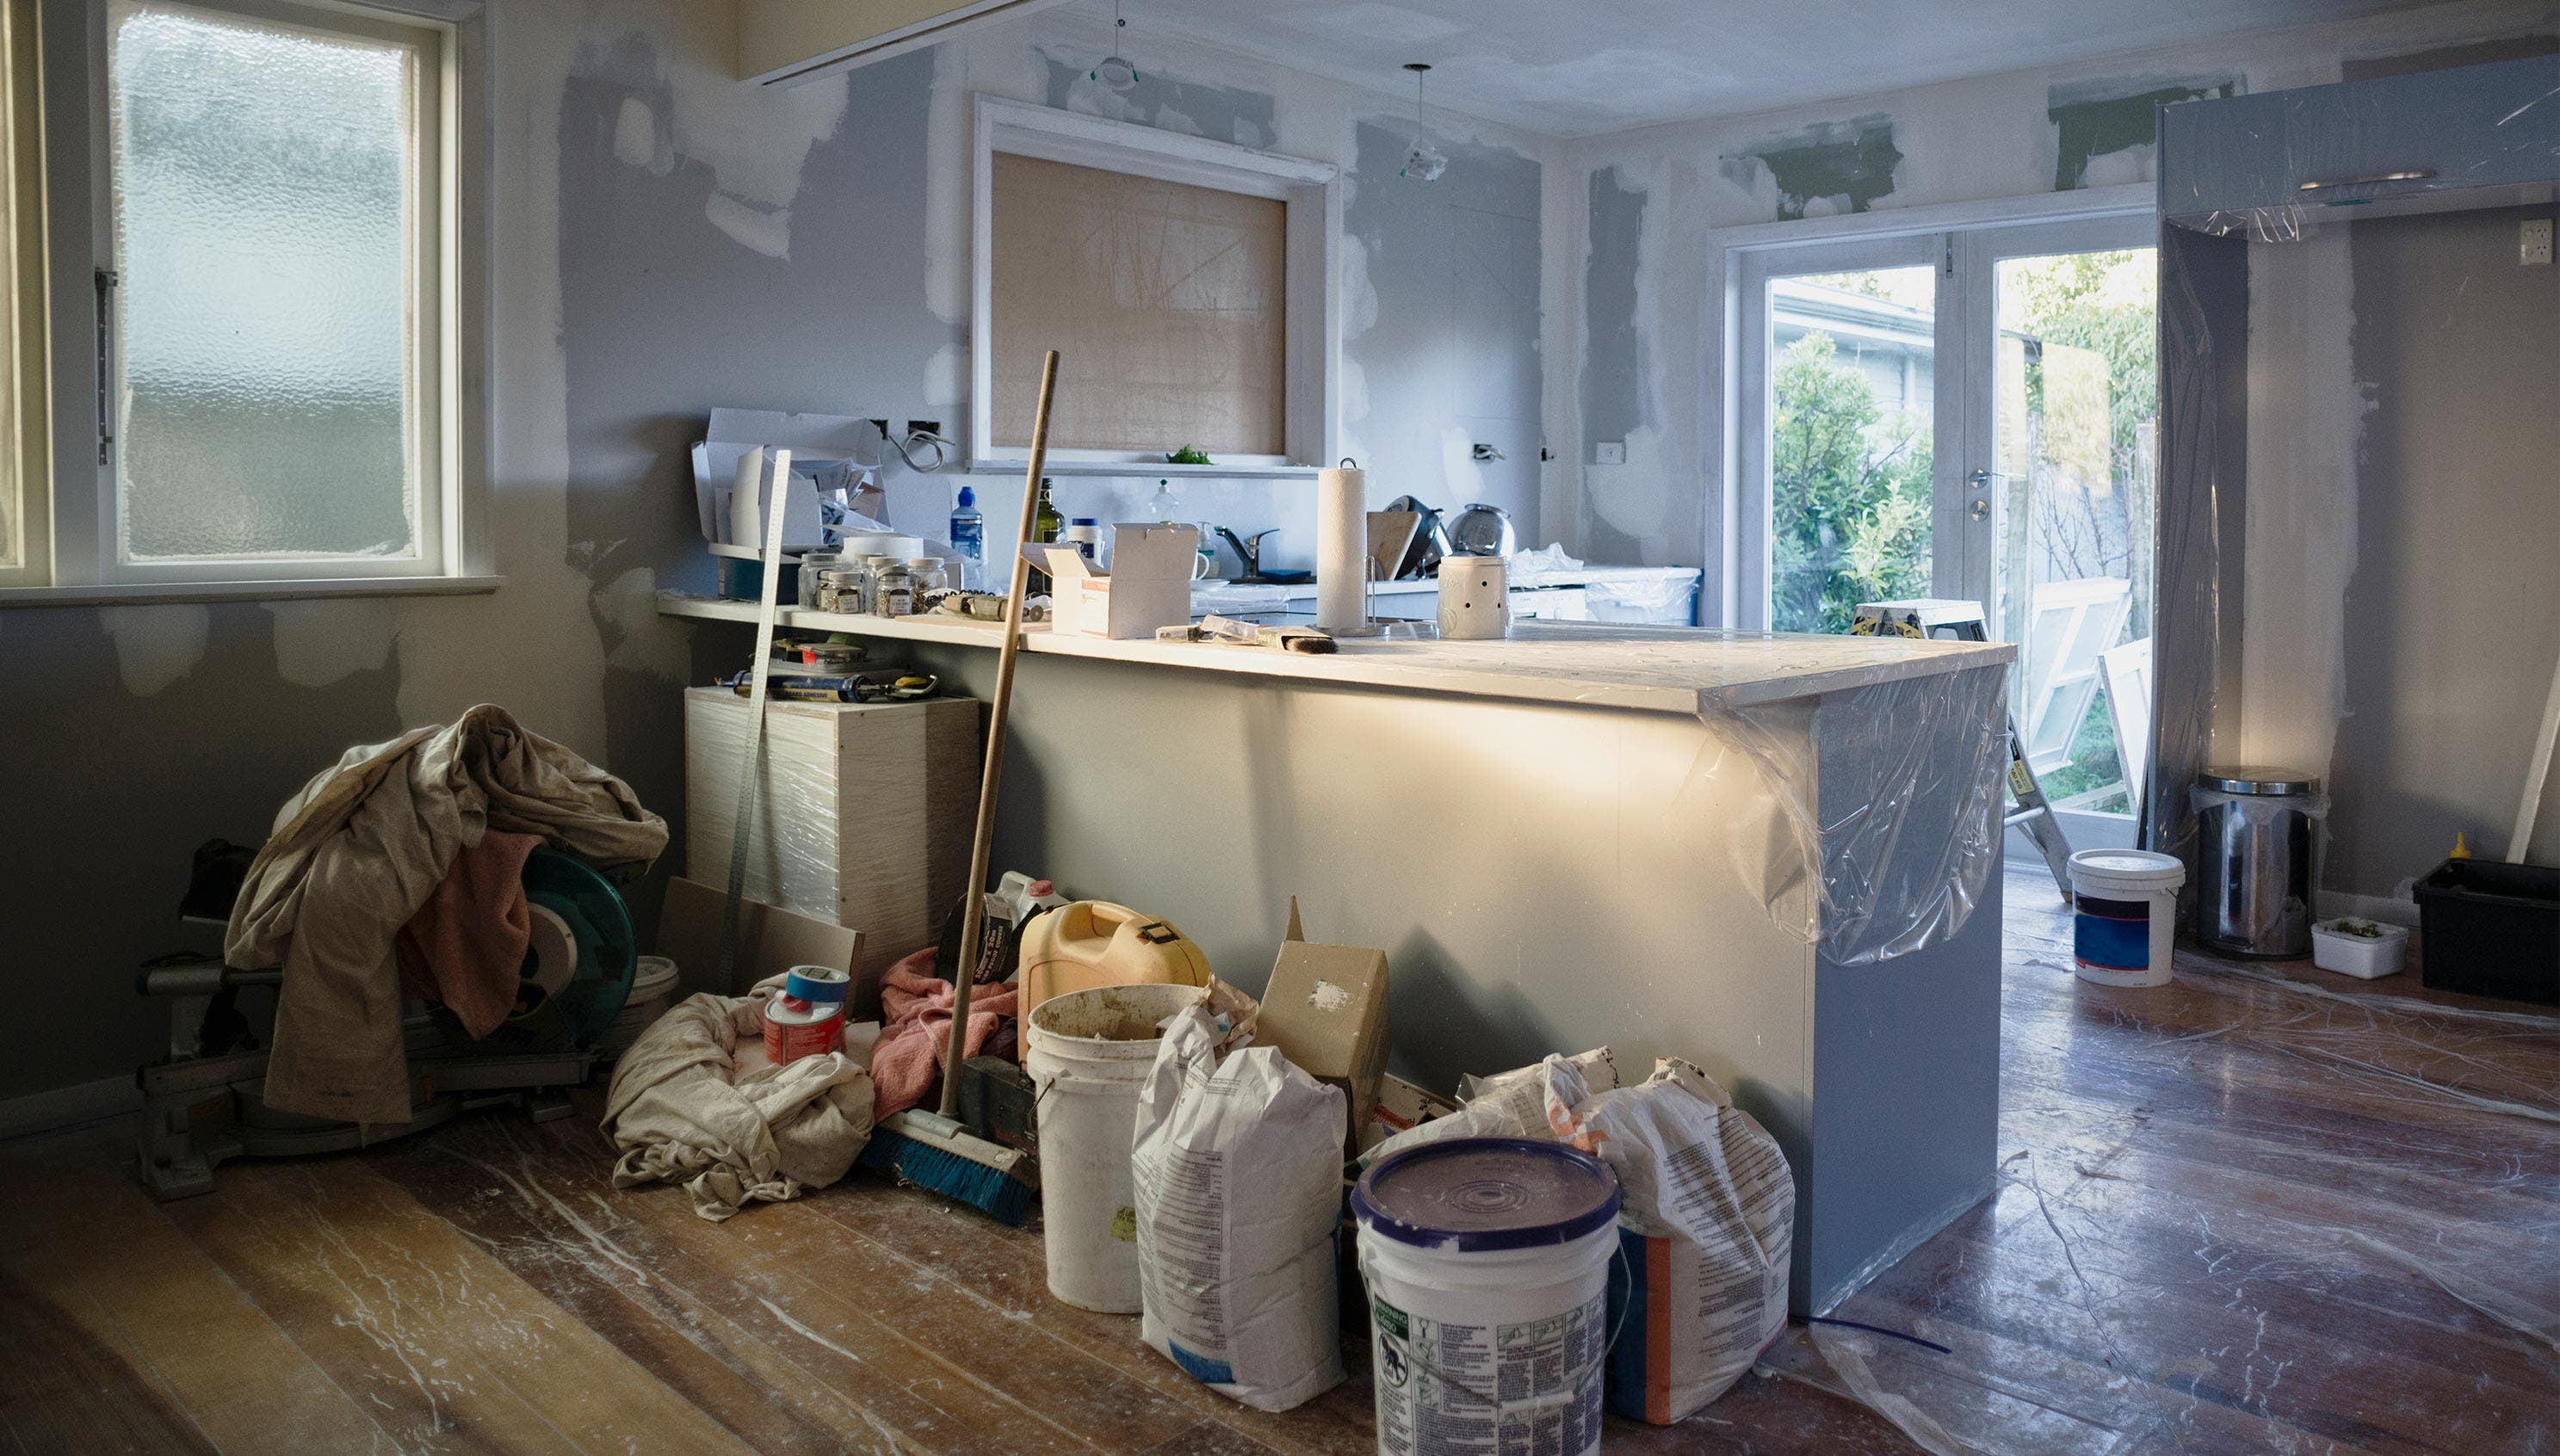 How Much Does A Kitchen Remodel Cost? | Bankrate.com